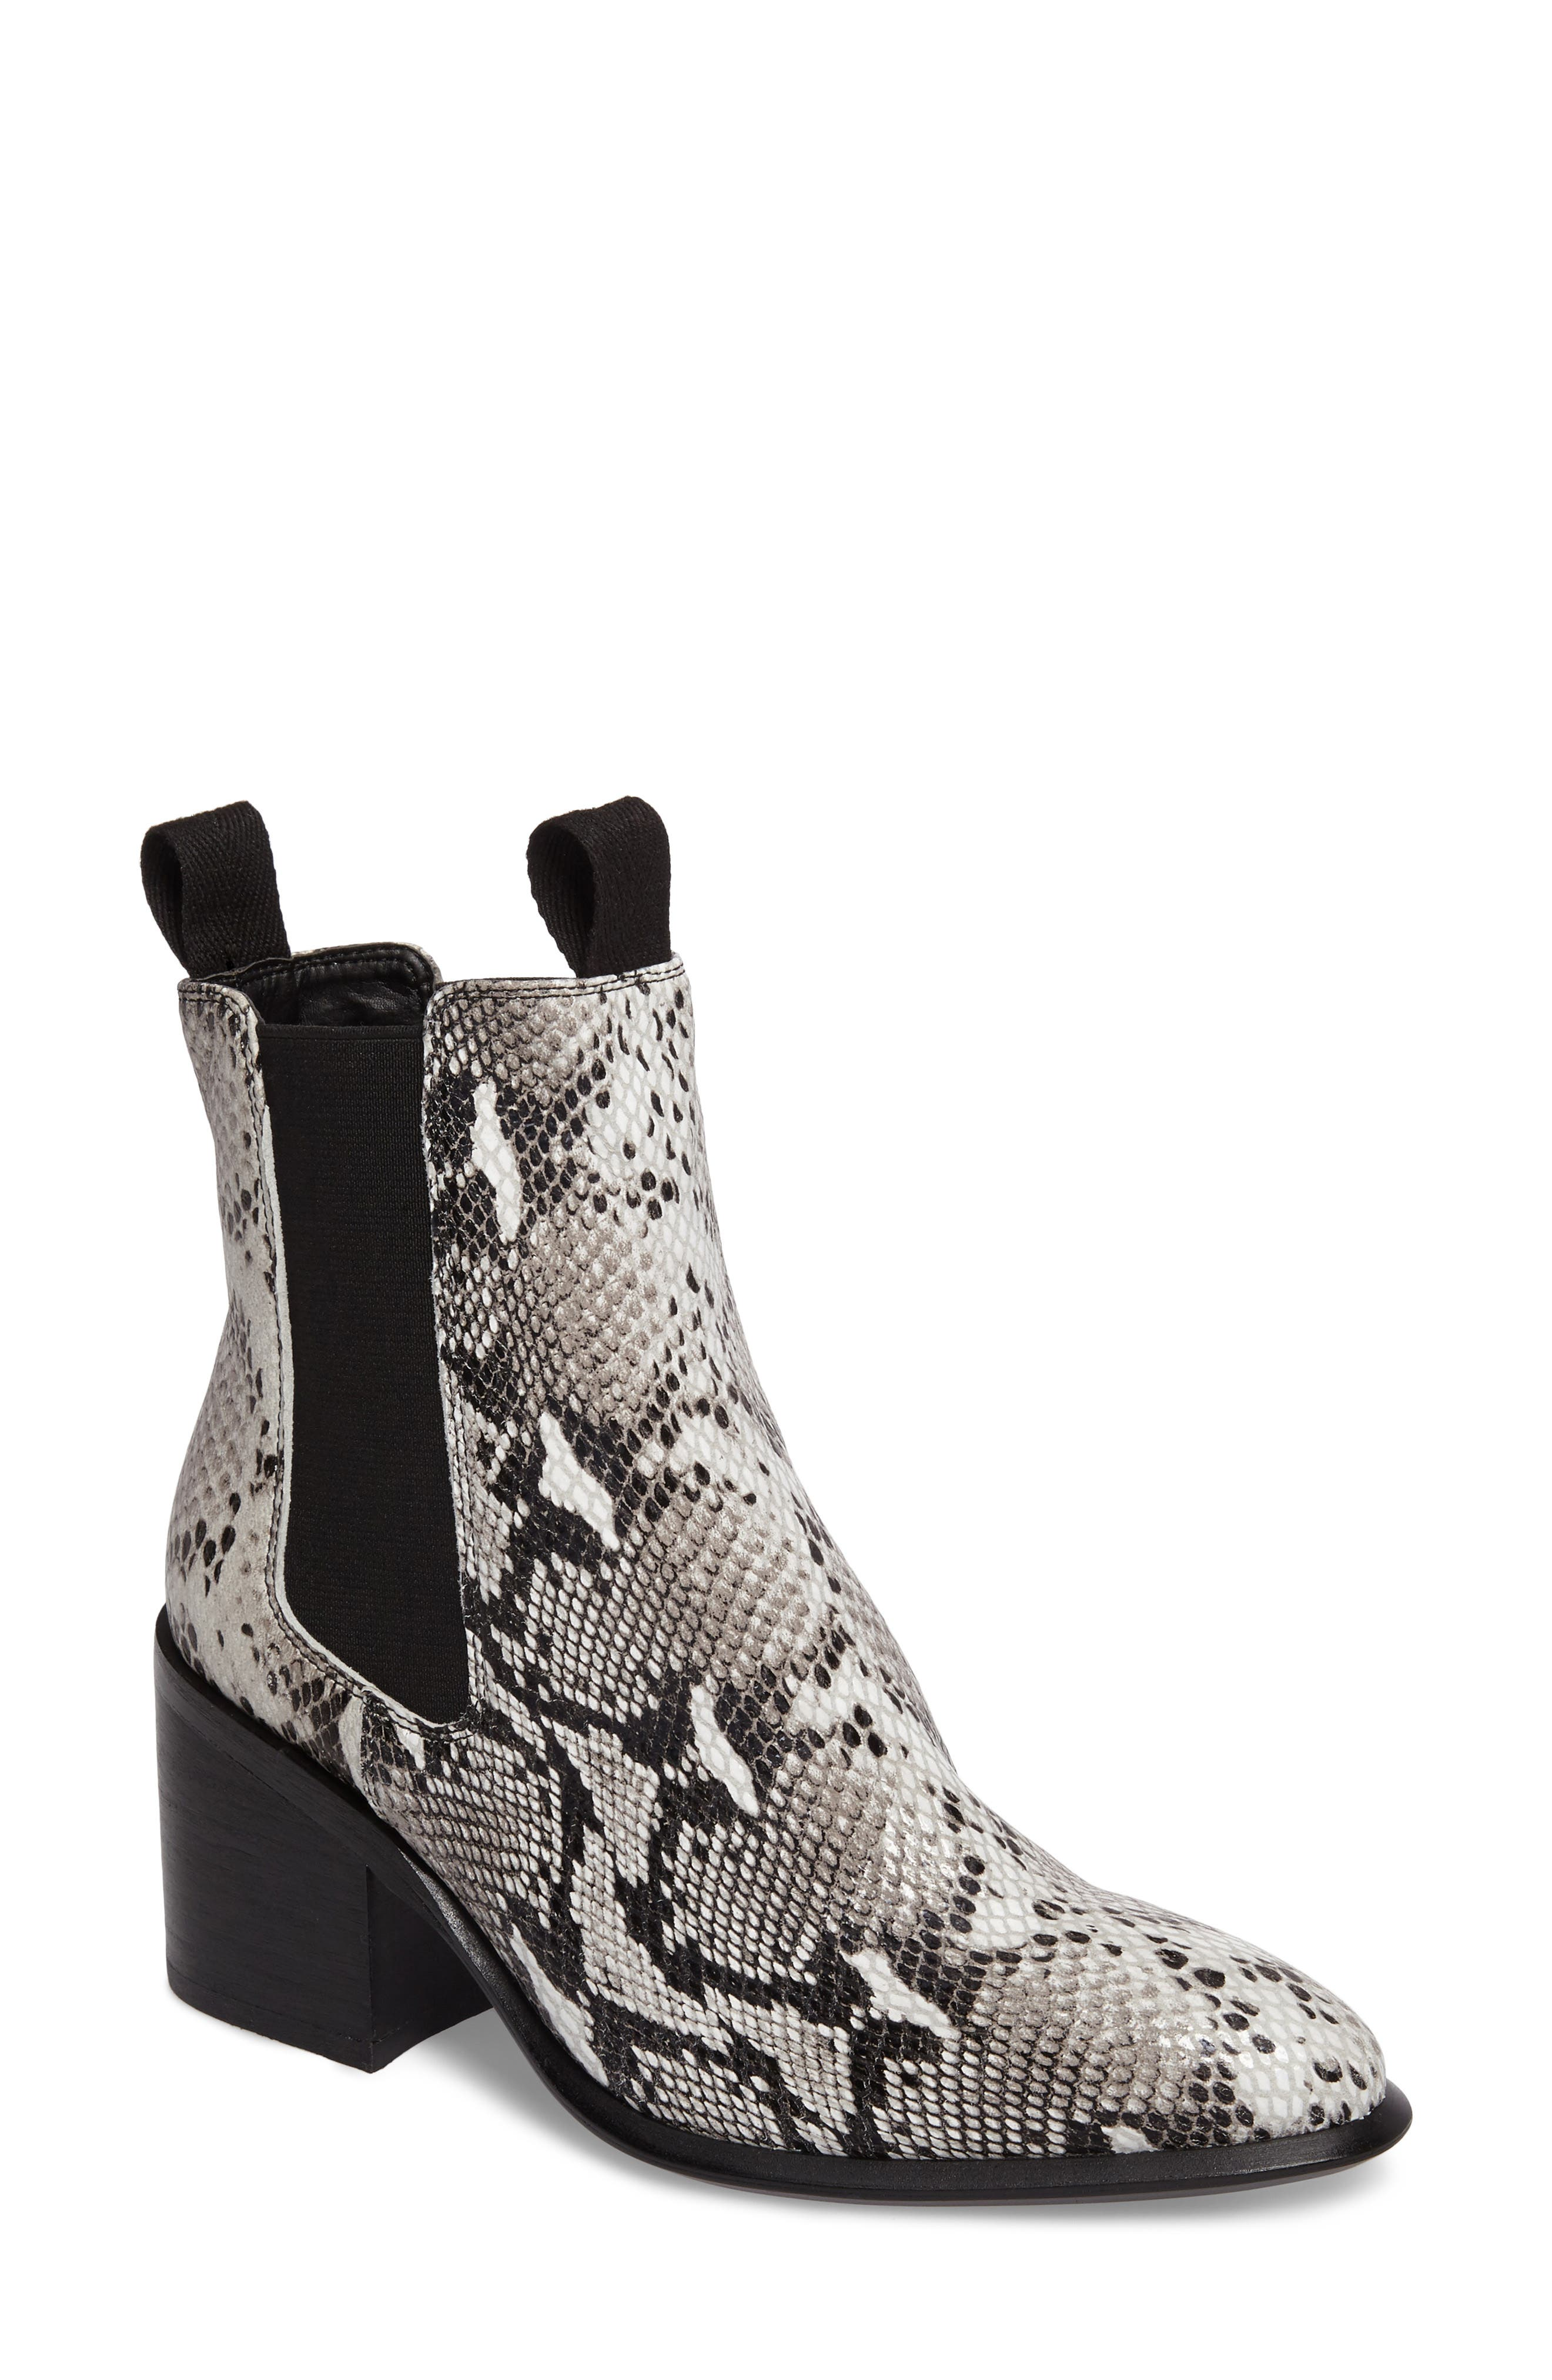 Hampton Bootie,                         Main,                         color, Natural Snake Print Leather